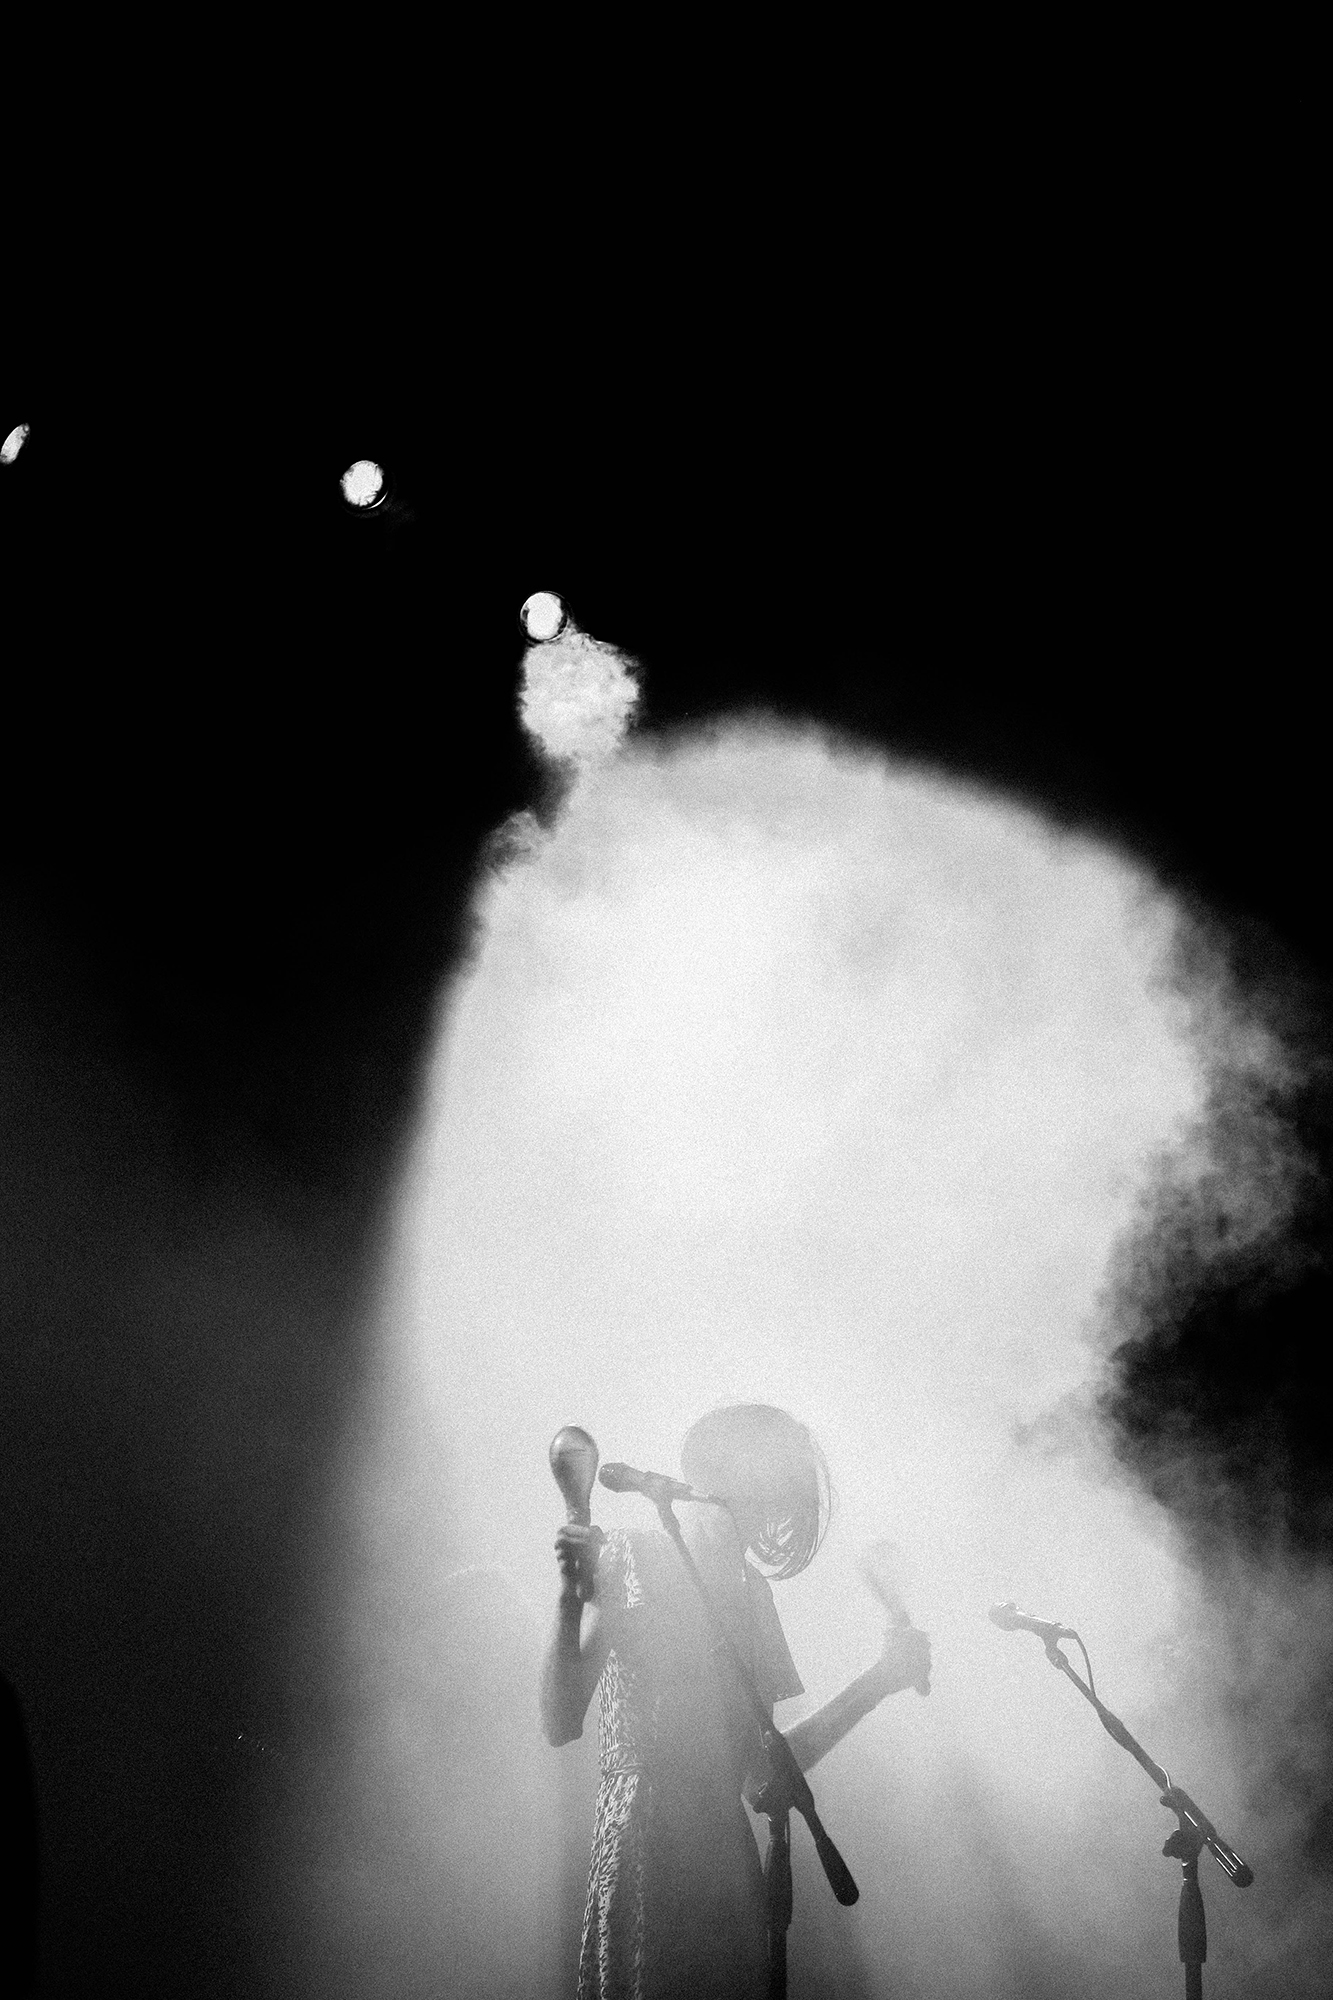 Black and white photograph of lead singer with light shining through the smoke